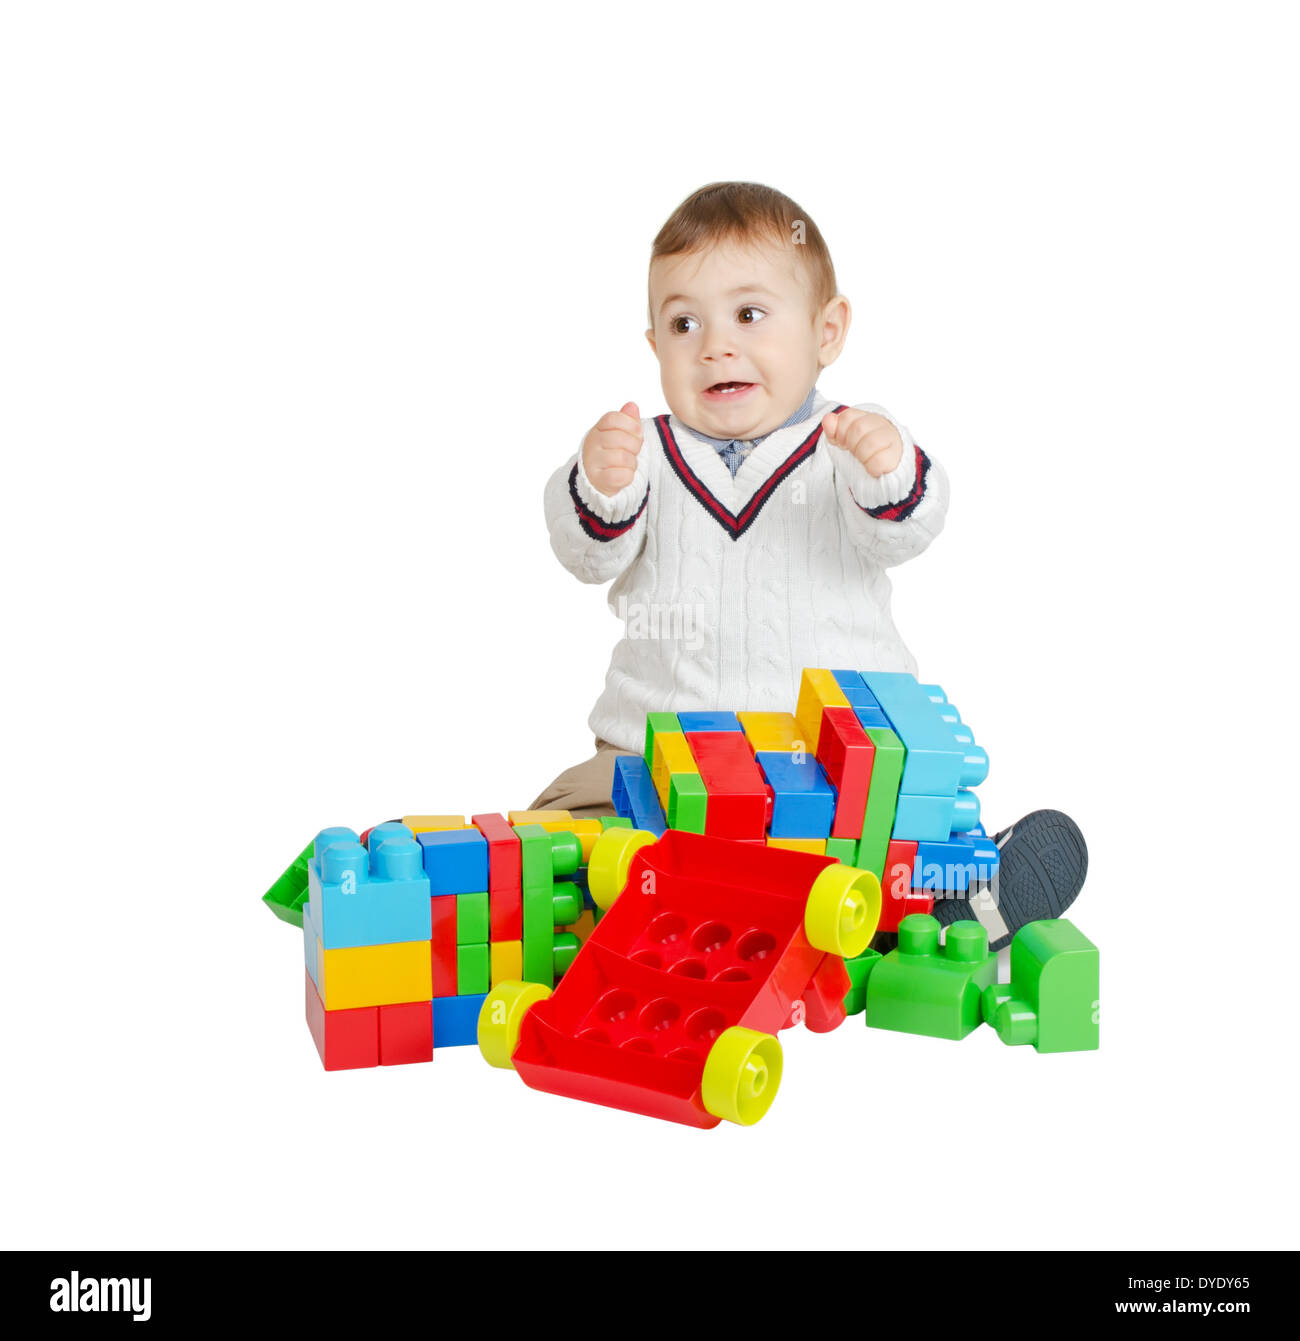 angry boy with colorful plastic toys isolated on white Stock Photo